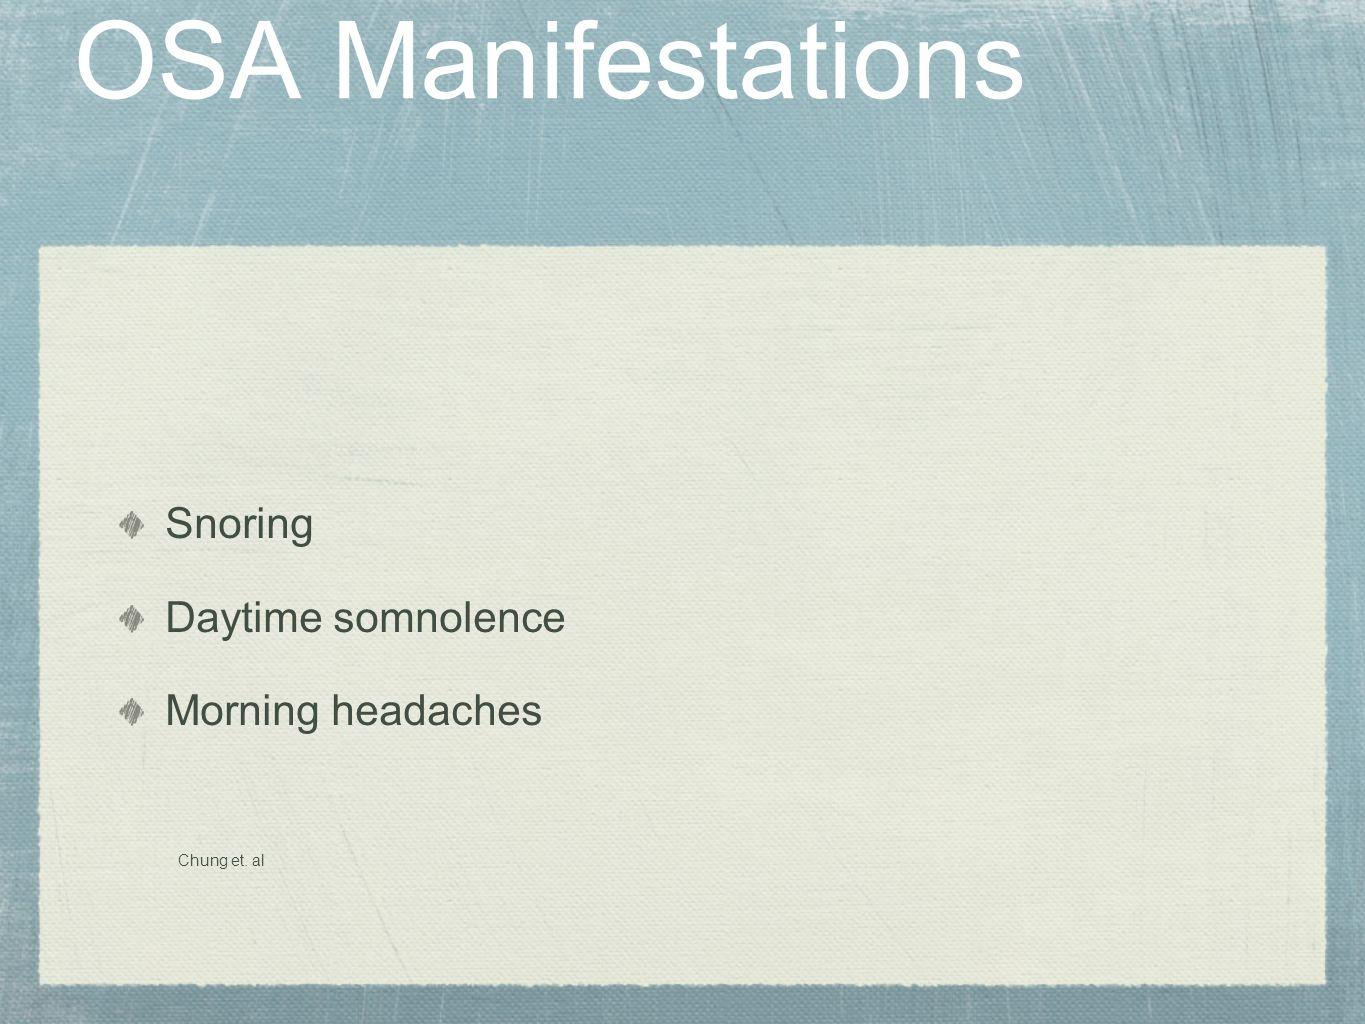 OSA Manifestations Snoring Daytime somnolence Morning headaches